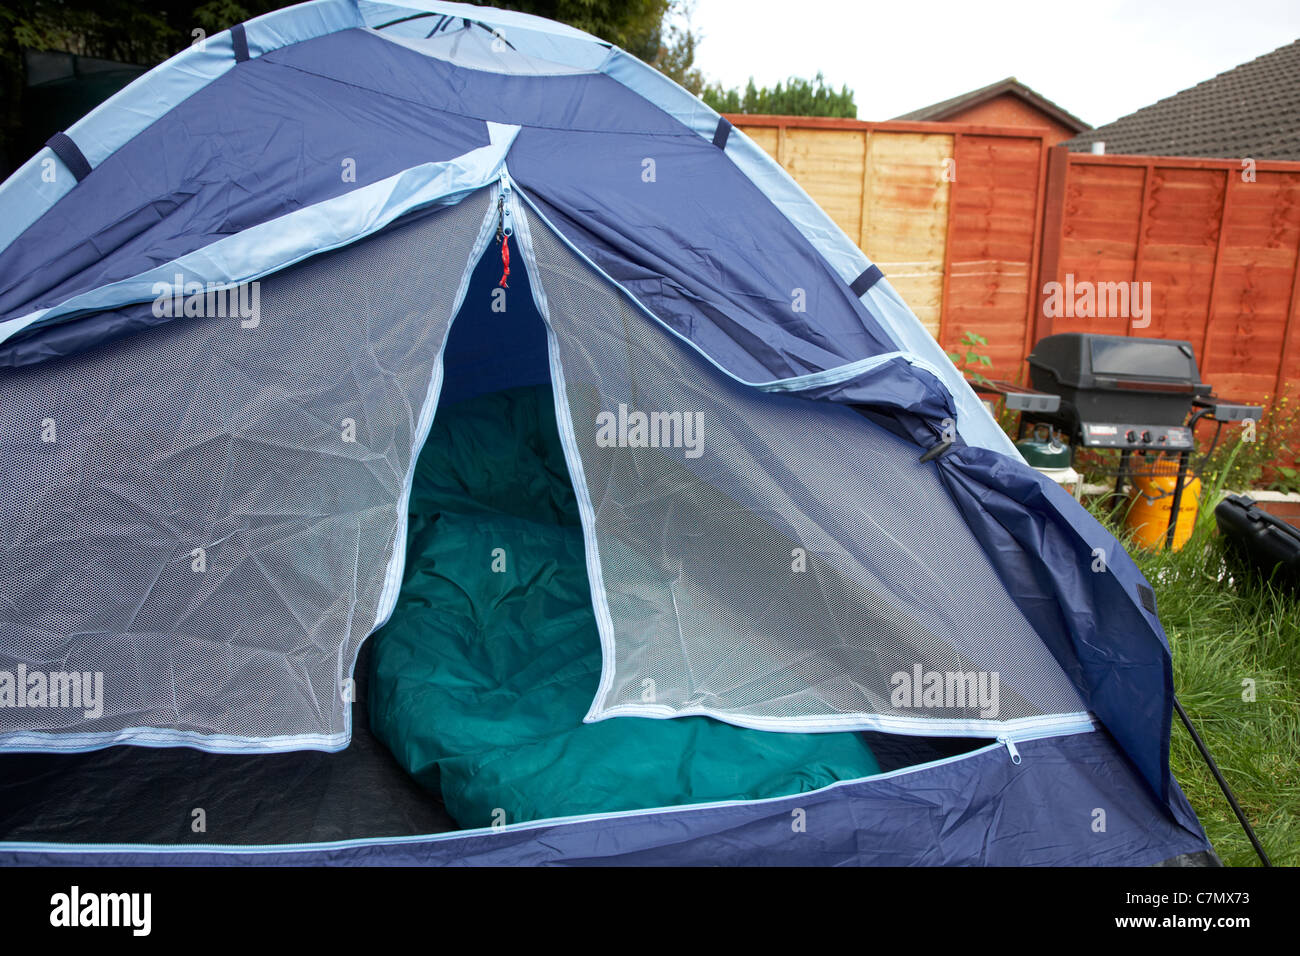 front door left open on a small dome tent pitched in the garden of the house in the uk - Stock Image